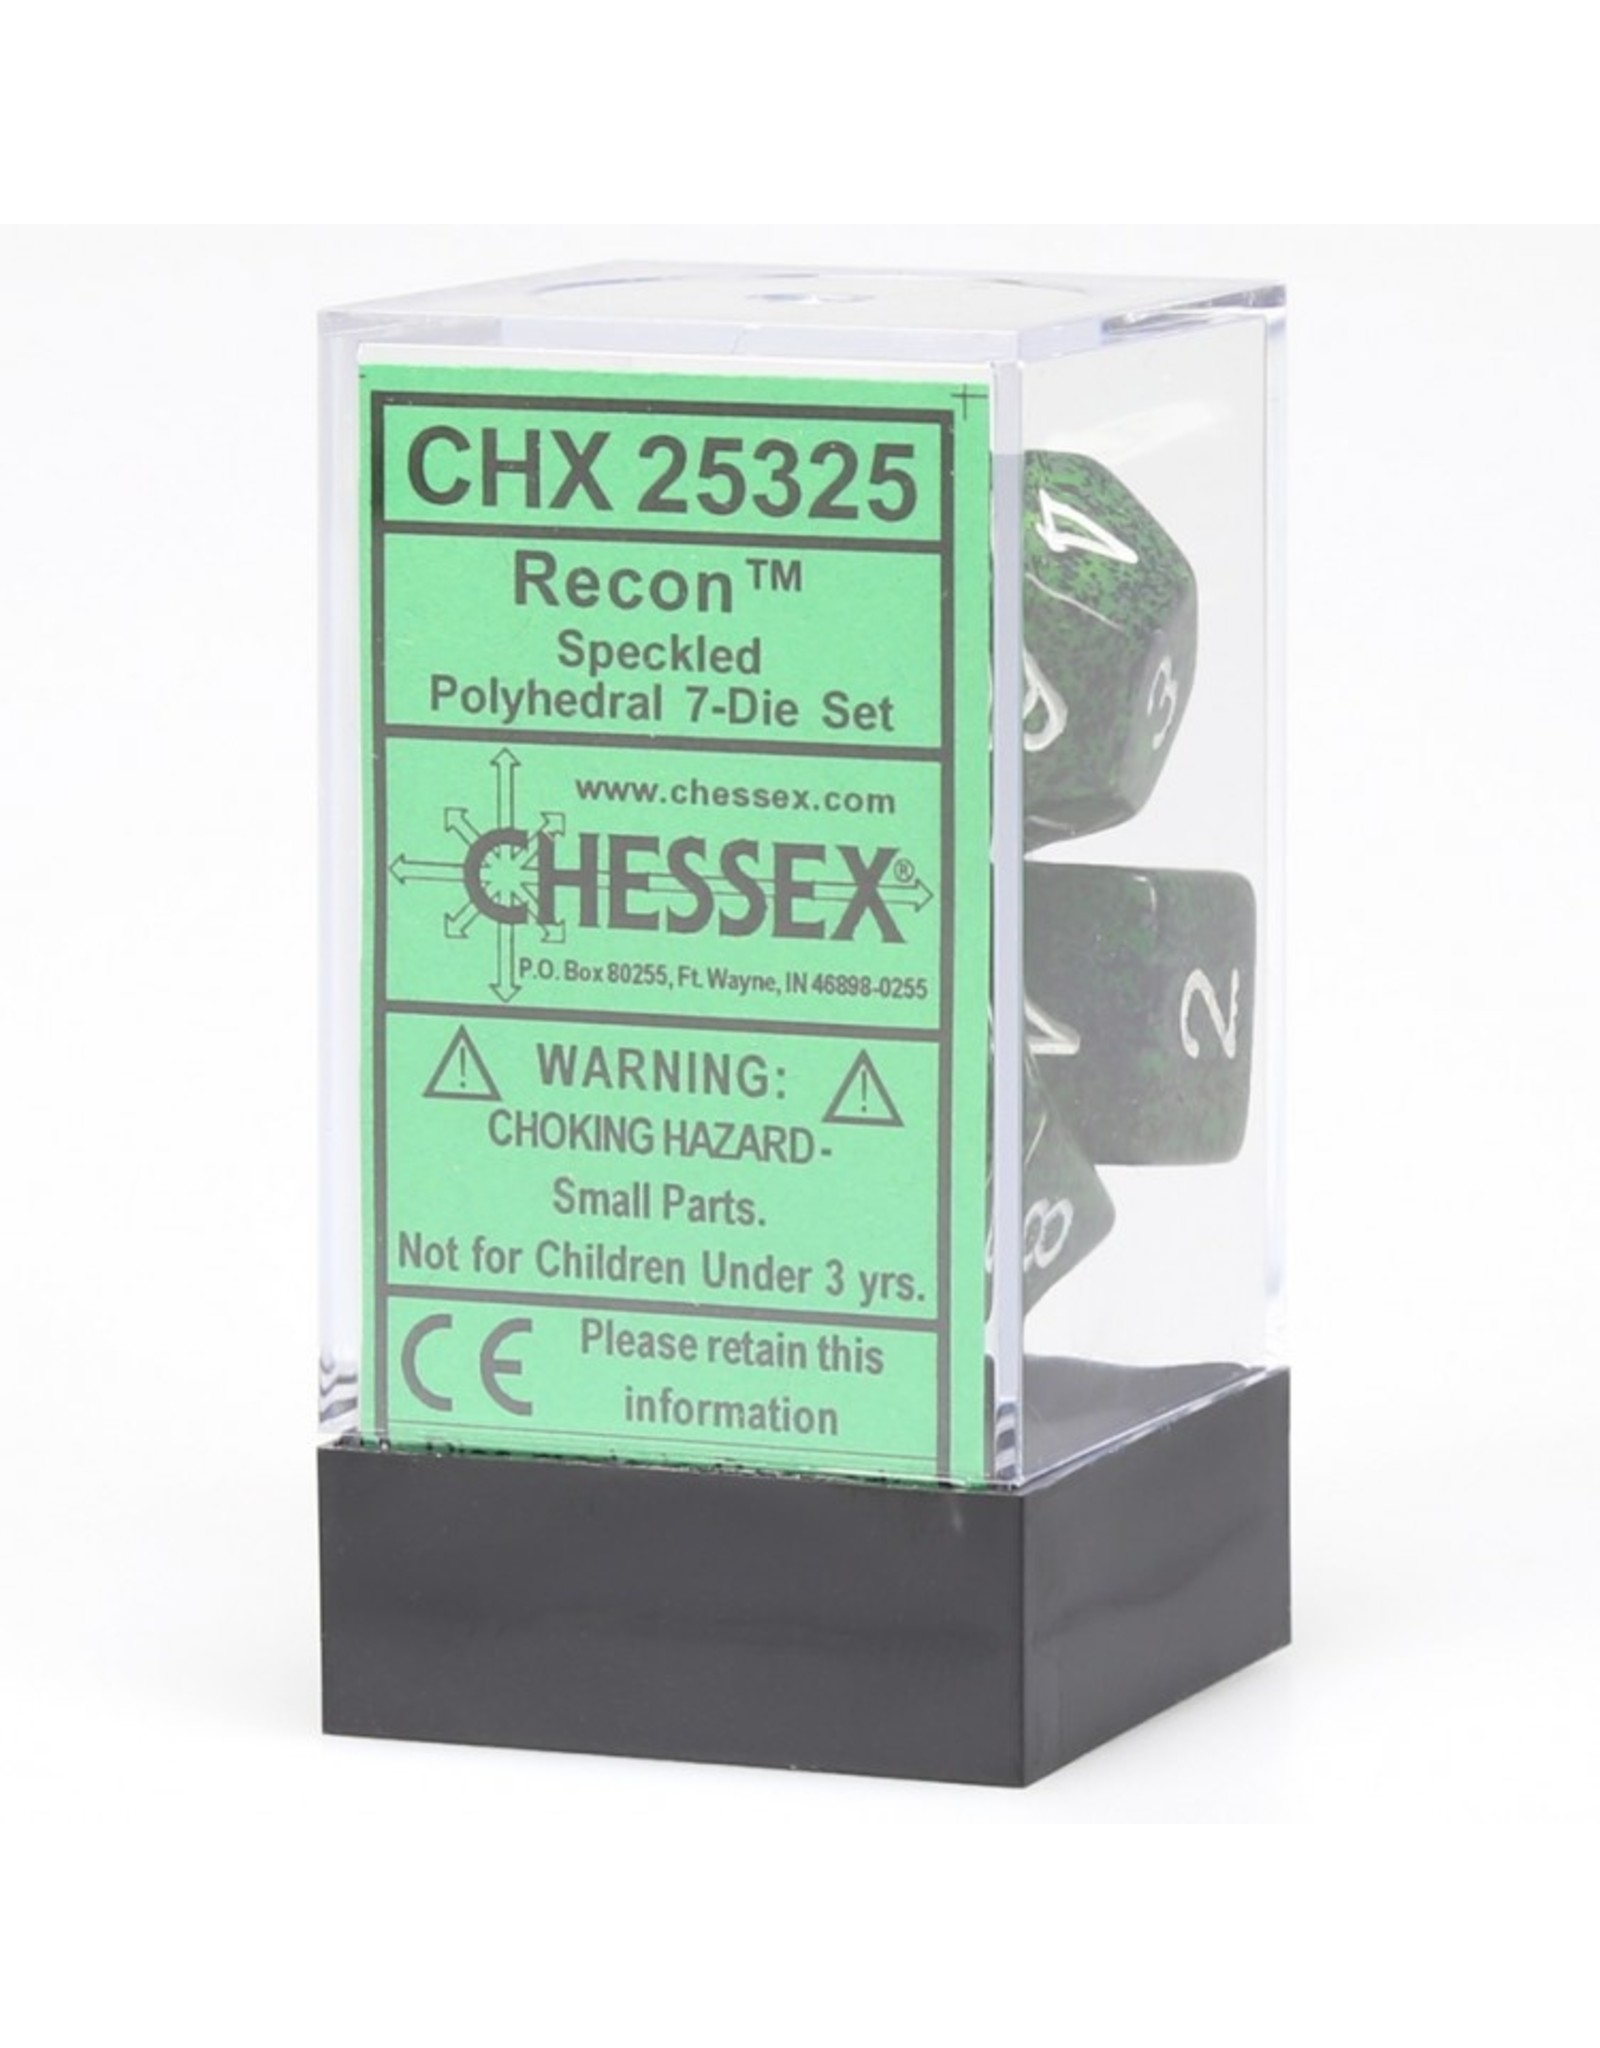 Chessex 7-Set Polyhedral CubeSP Recon